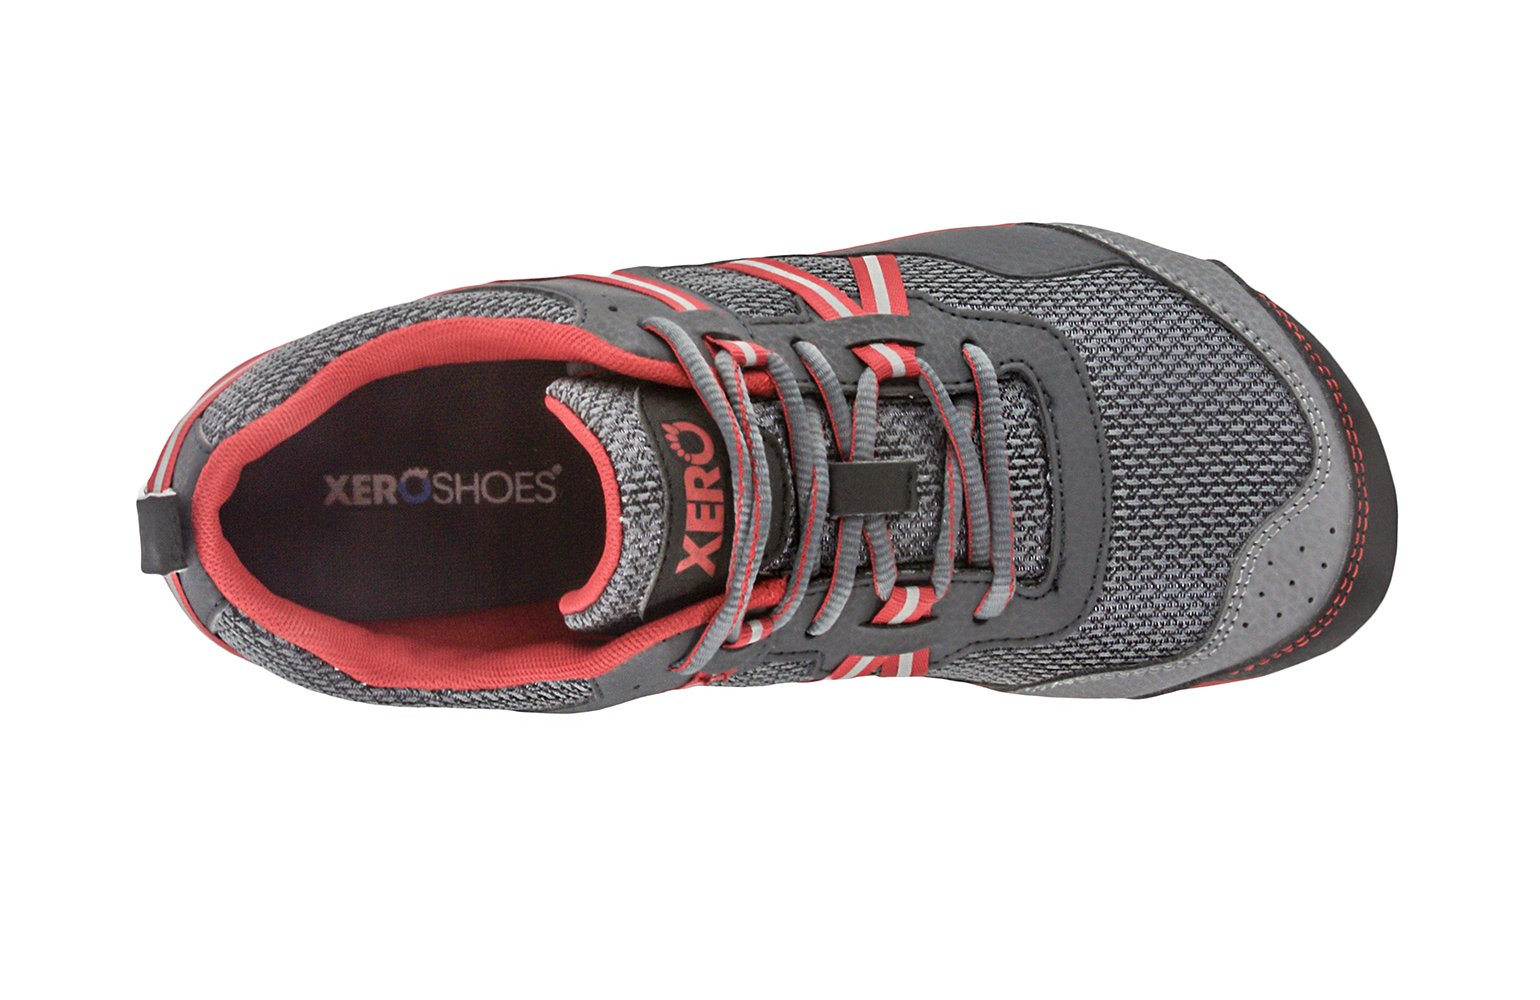 Xero Shoes Prio - Men's Minimalist Barefoot Trail and Road Running Shoe - Fitness, Athletic Zero Drop Sneaker - Charcoal Red by Xero Shoes (Image #5)